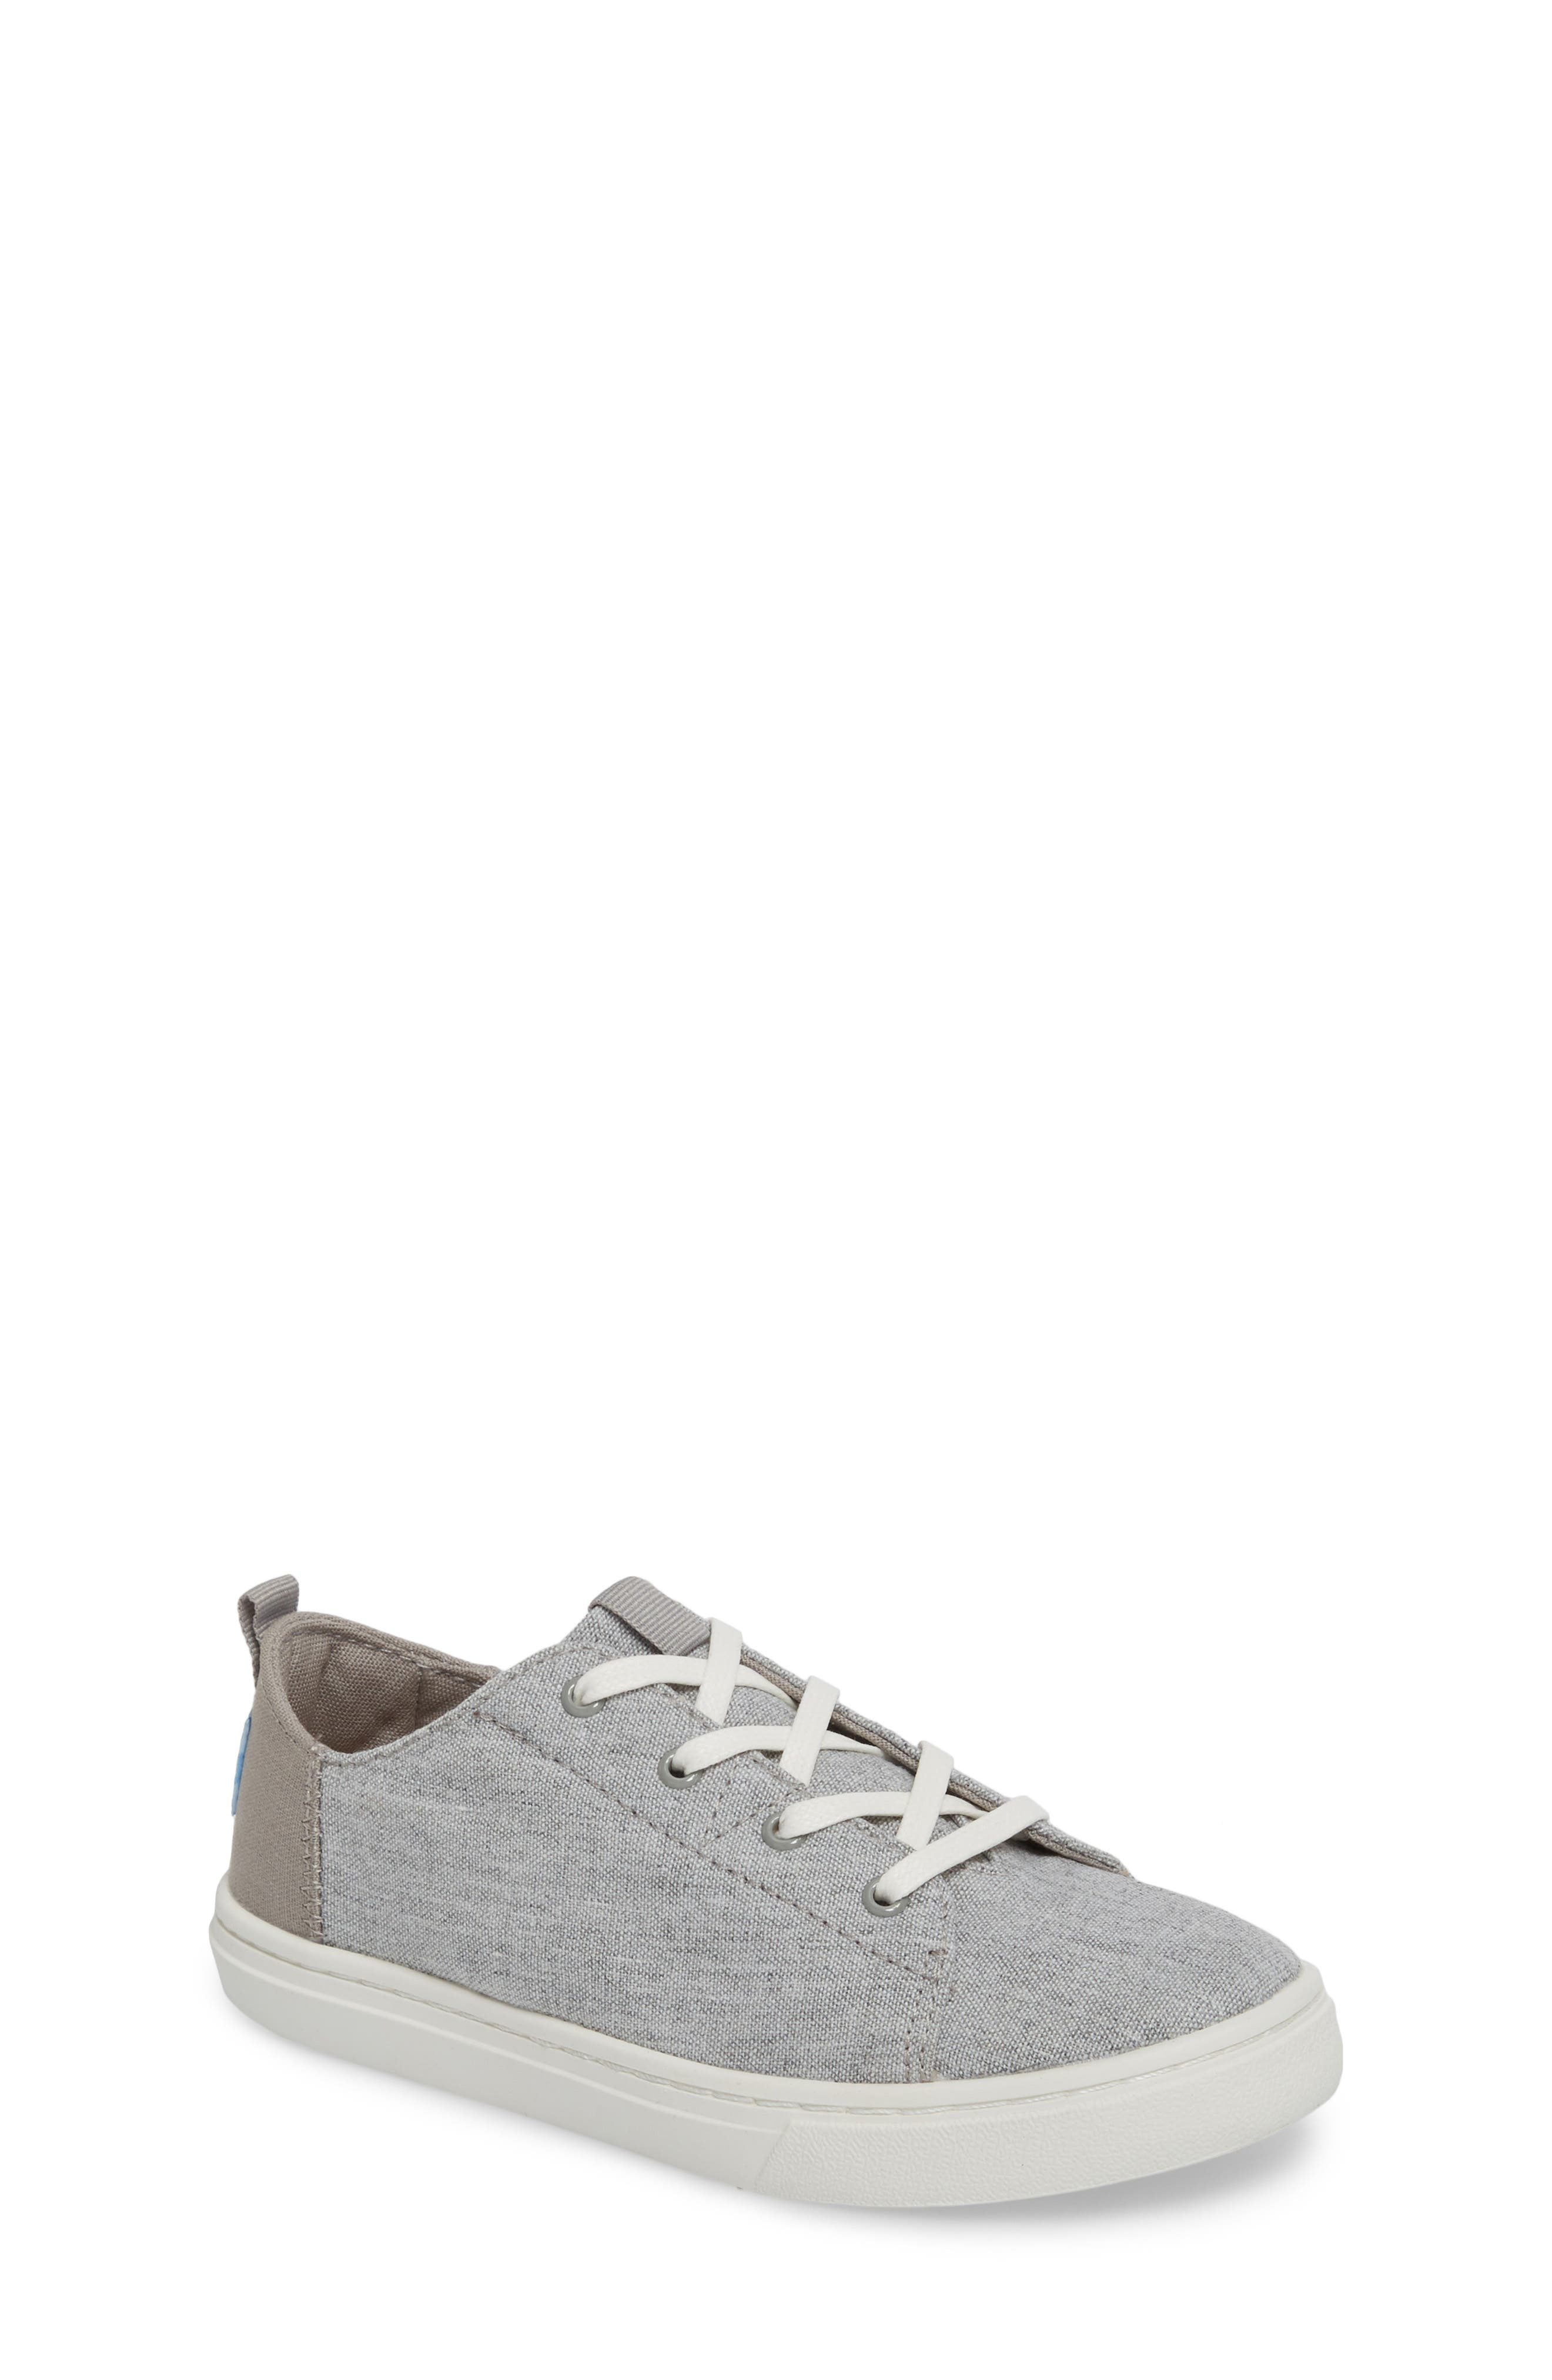 Lenny Sneaker,                         Main,                         color, DRIZZLE GREY SLUB CHAMBRAY